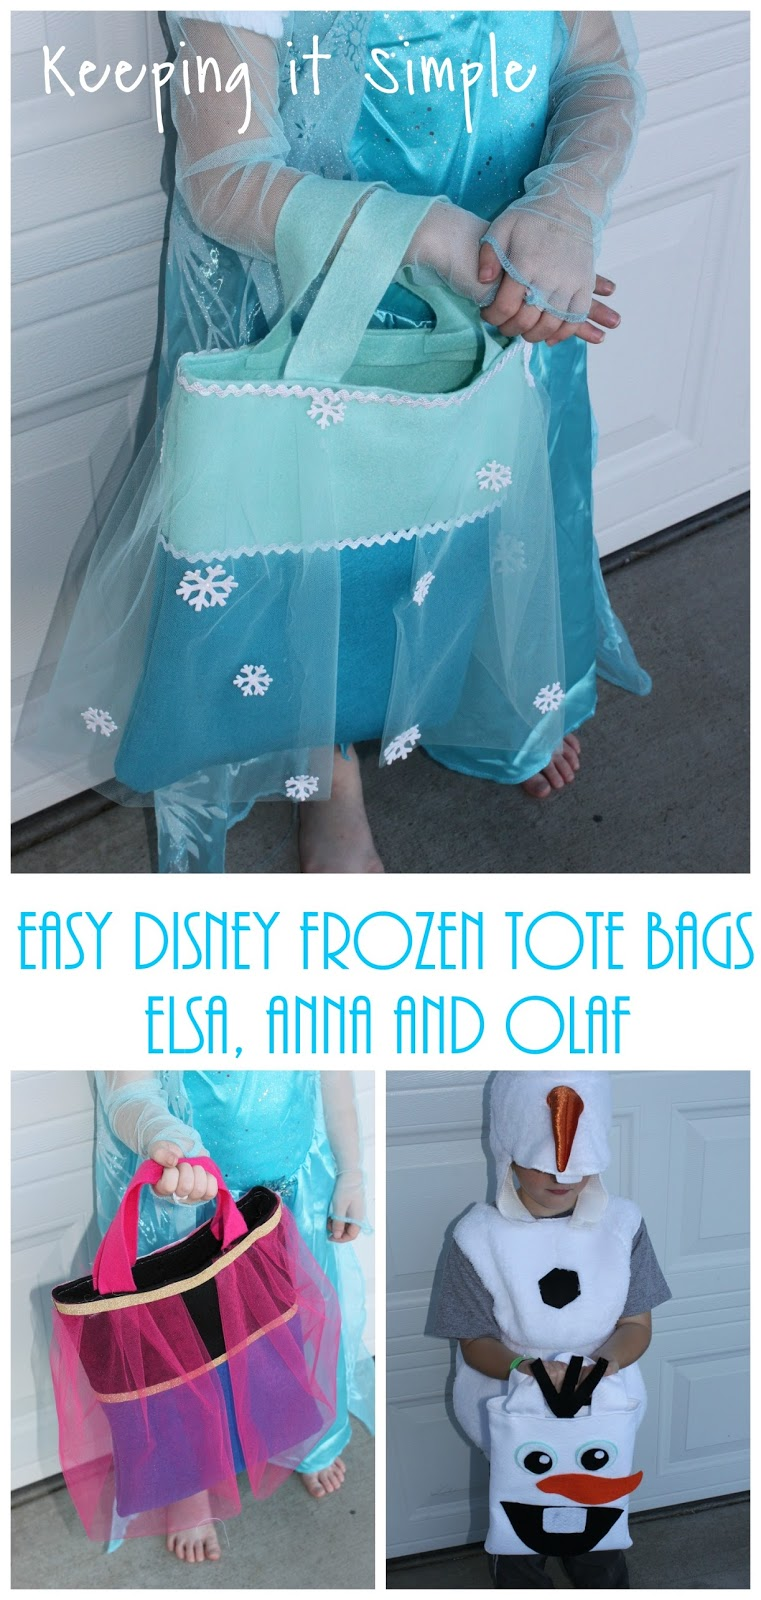 Easy Disney Frozen Tote Bags Elsa Anna And Olaf Perfect For Treat Or Trick